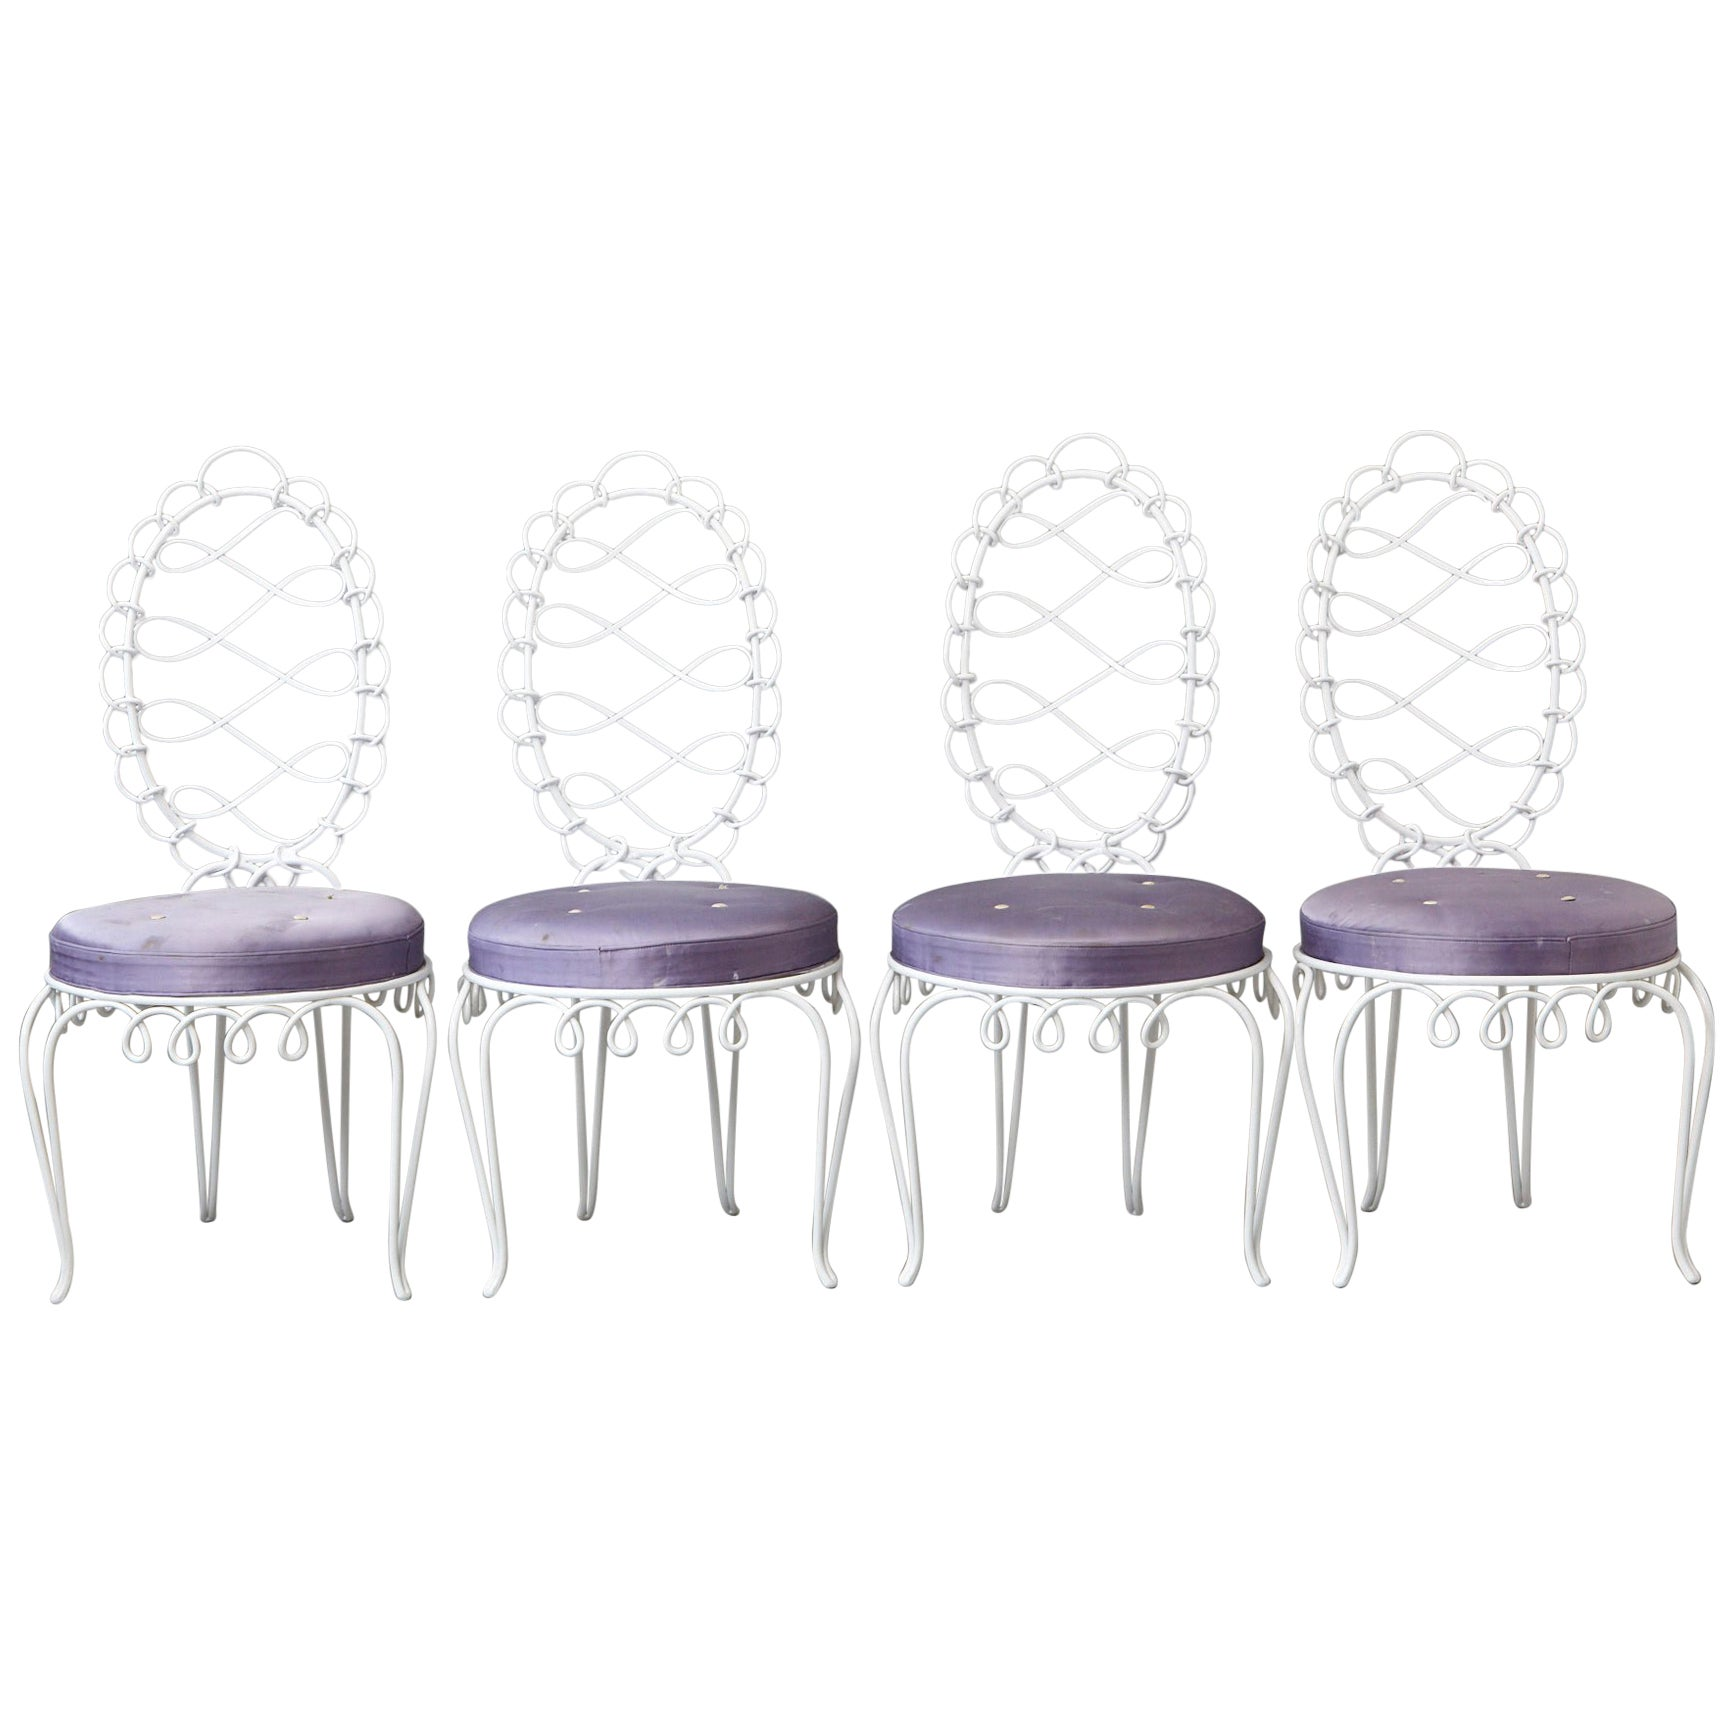 Set of Four René Prou 'Fer Forgé Rond' Iron Side Chairs, France 1940's